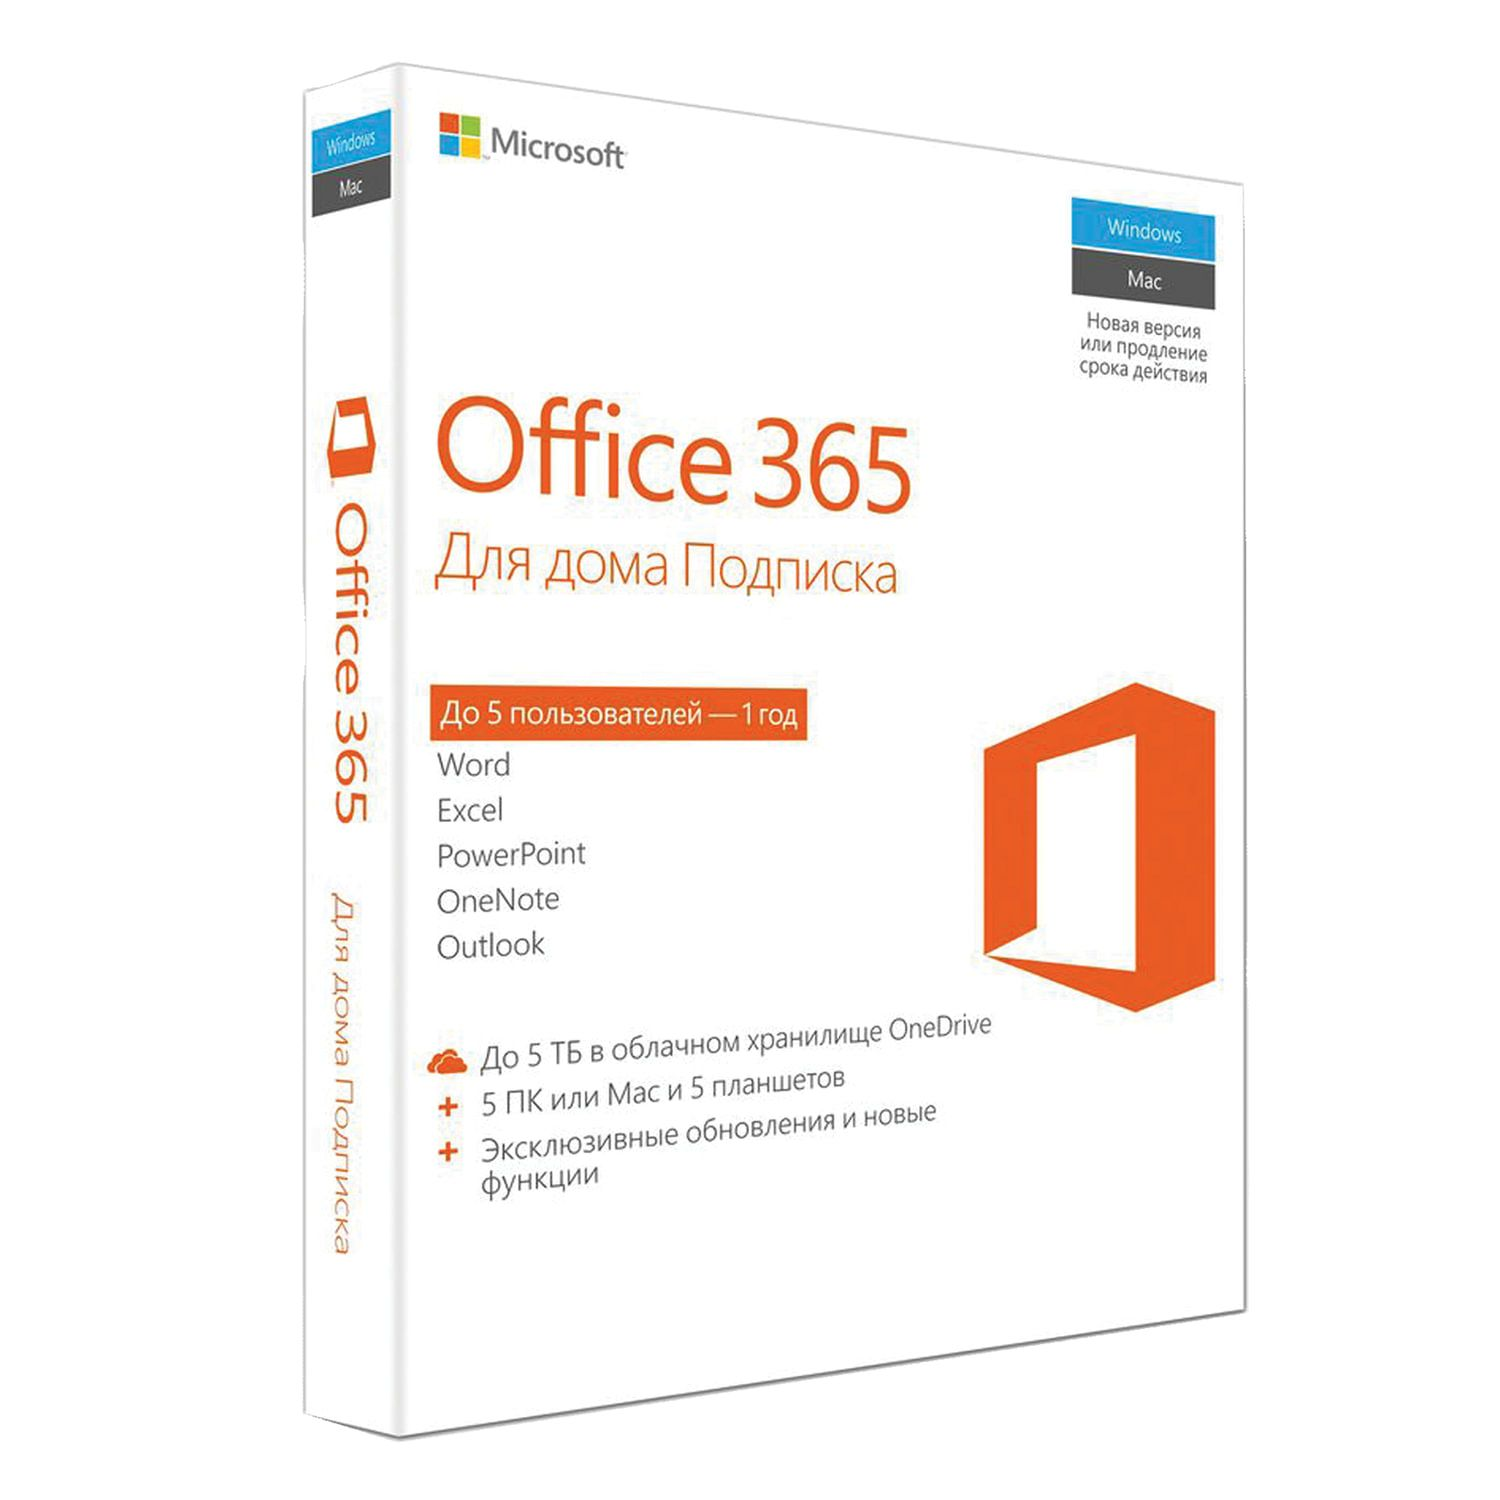 MICROSOFT / Office 365 Home software, 5 PCs, 1 year